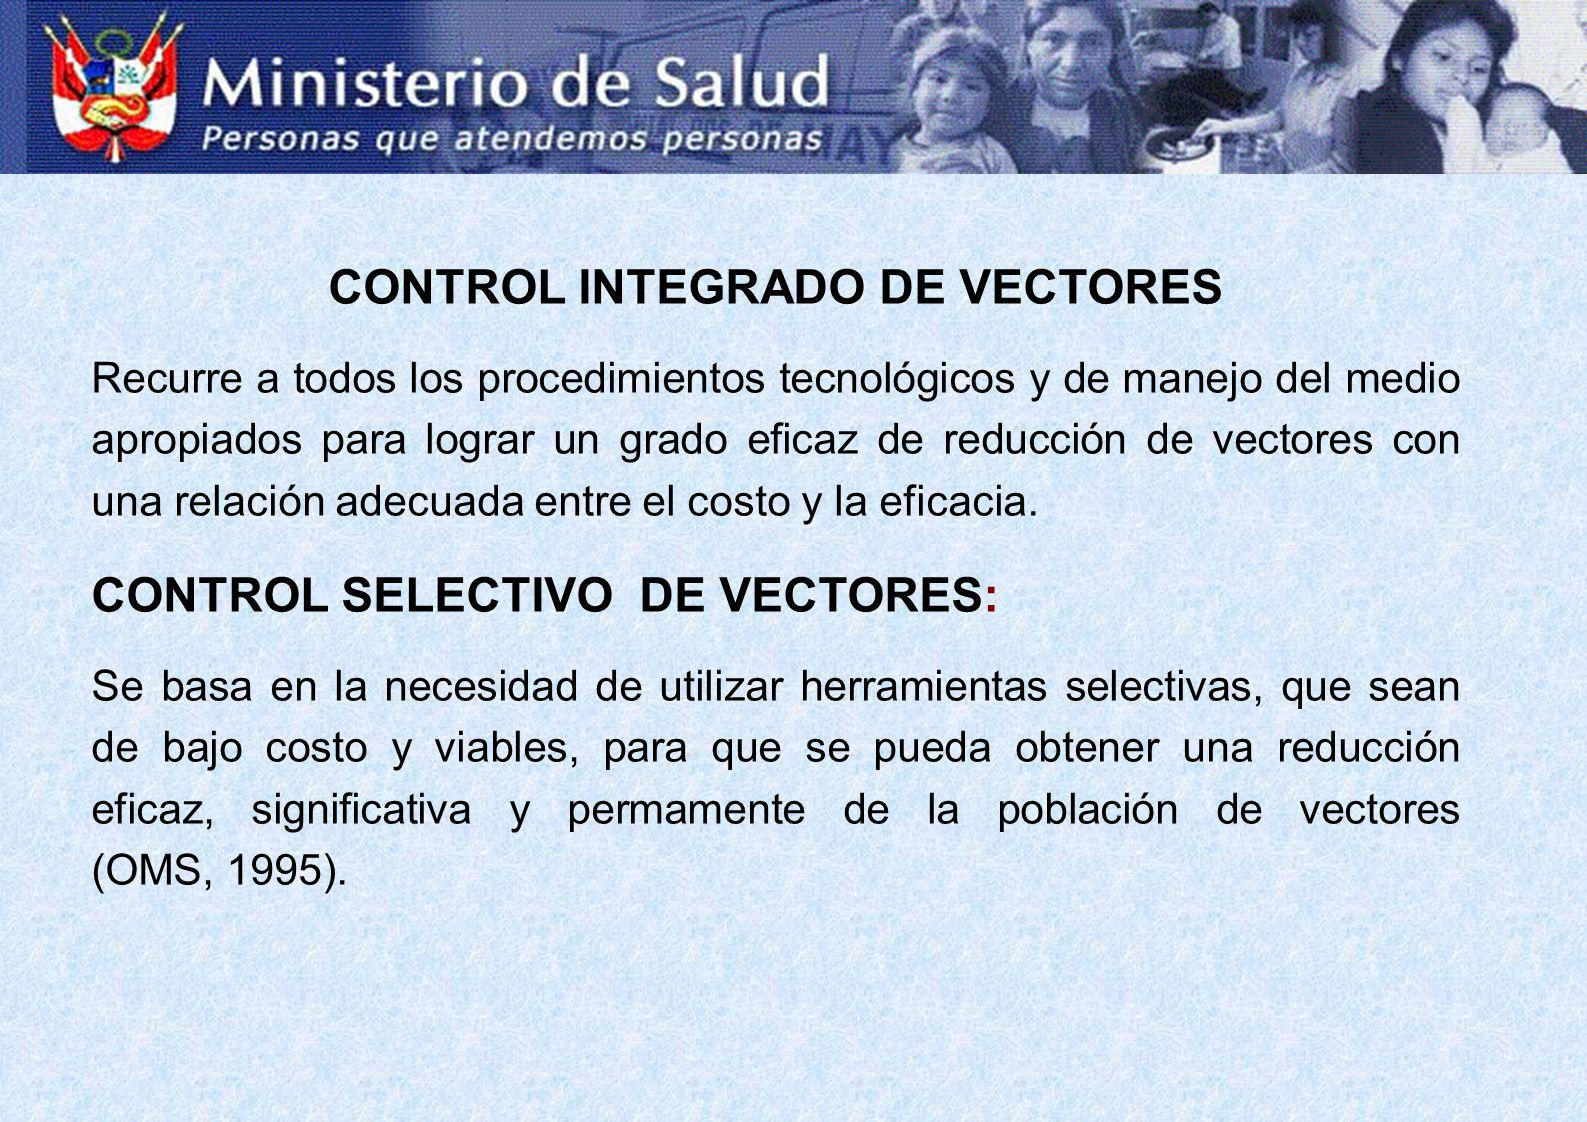 CONTROL INTEGRADO DE VECTORES